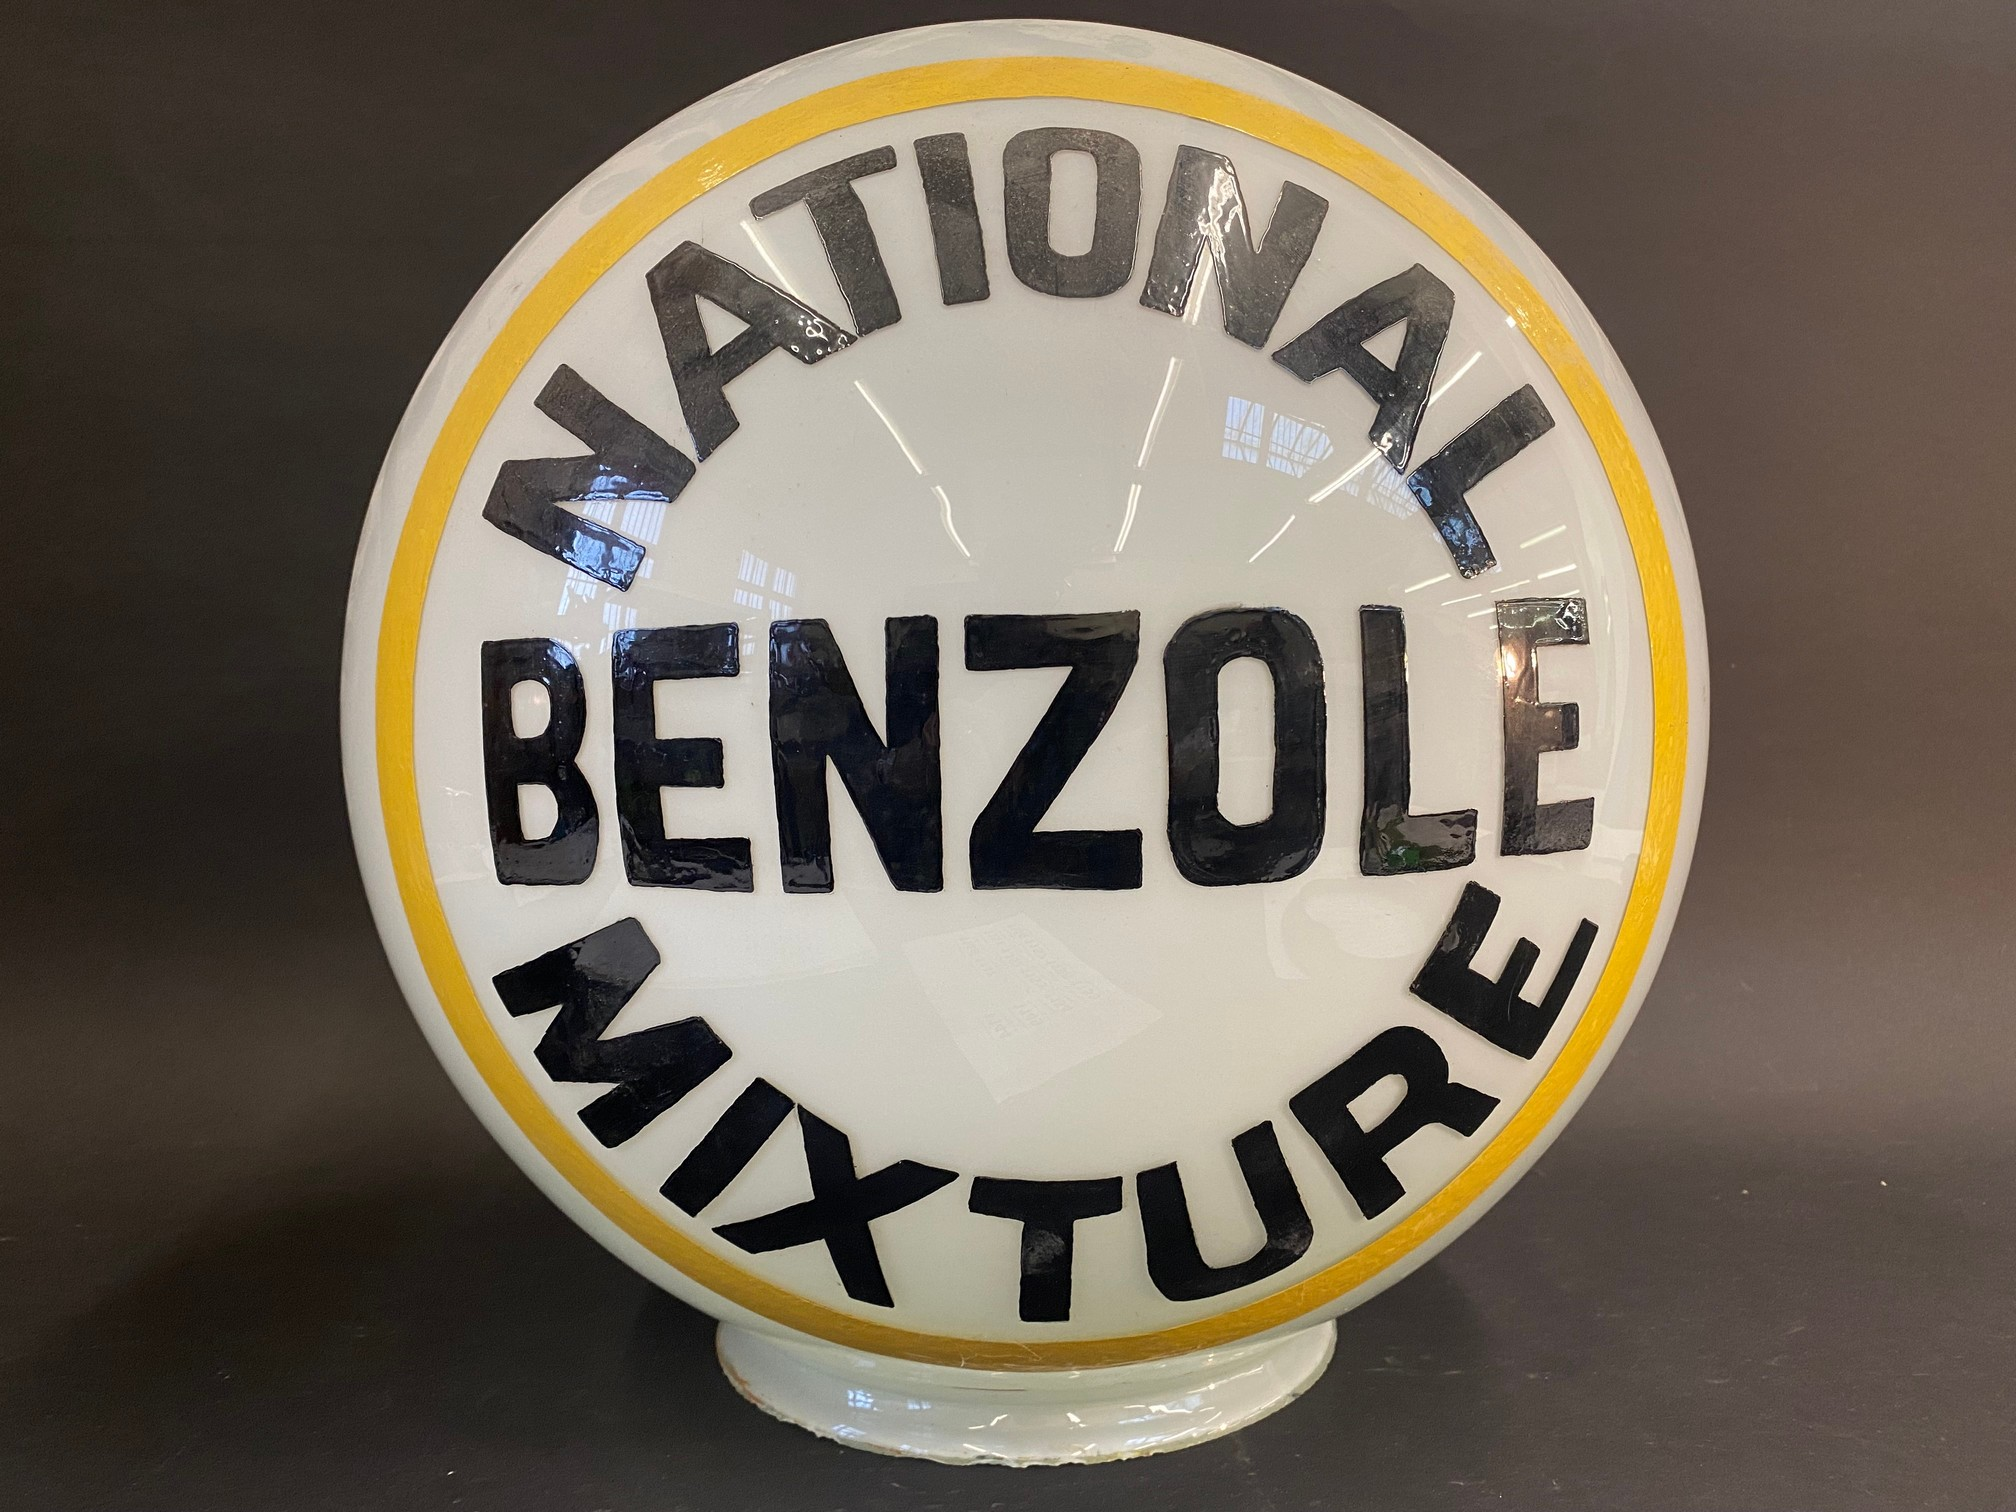 A National Benzole Mixture spherical glass petrol pump/post globe, larger neck version, repainted - Image 2 of 5